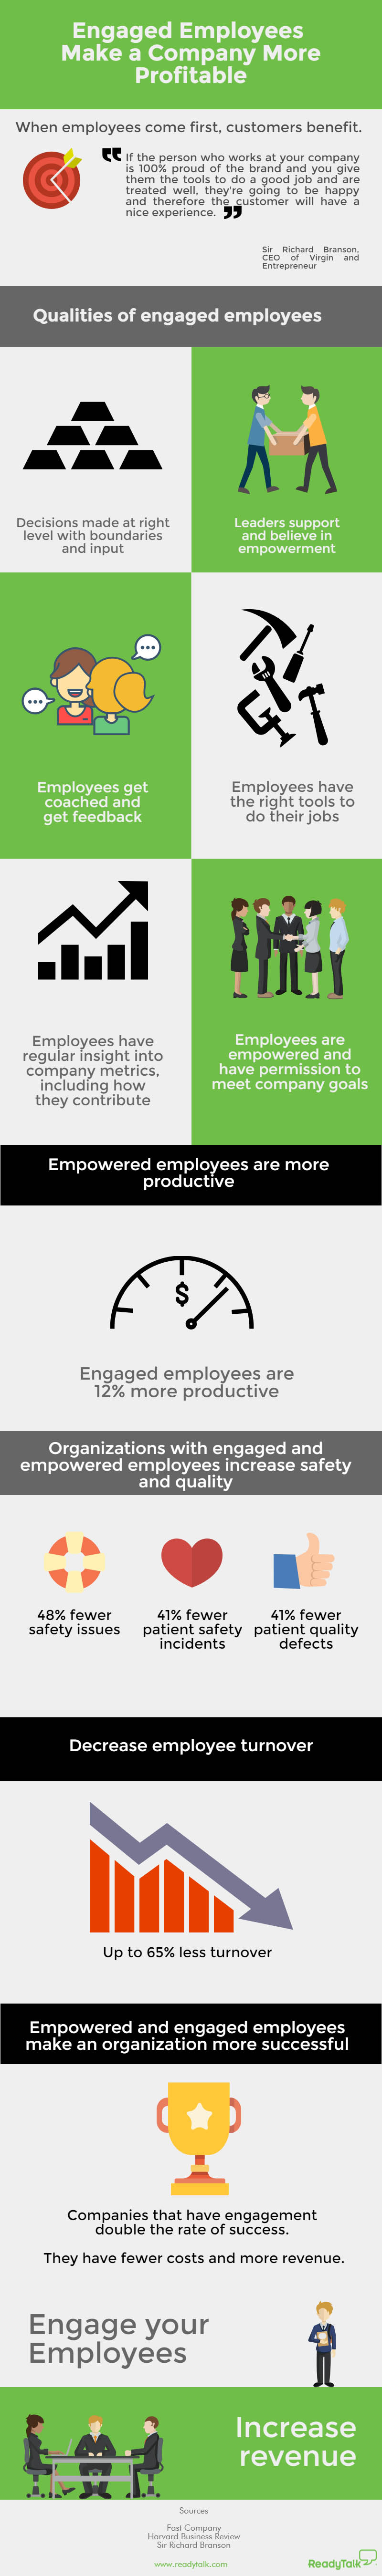 Empowering employees leads to productivity